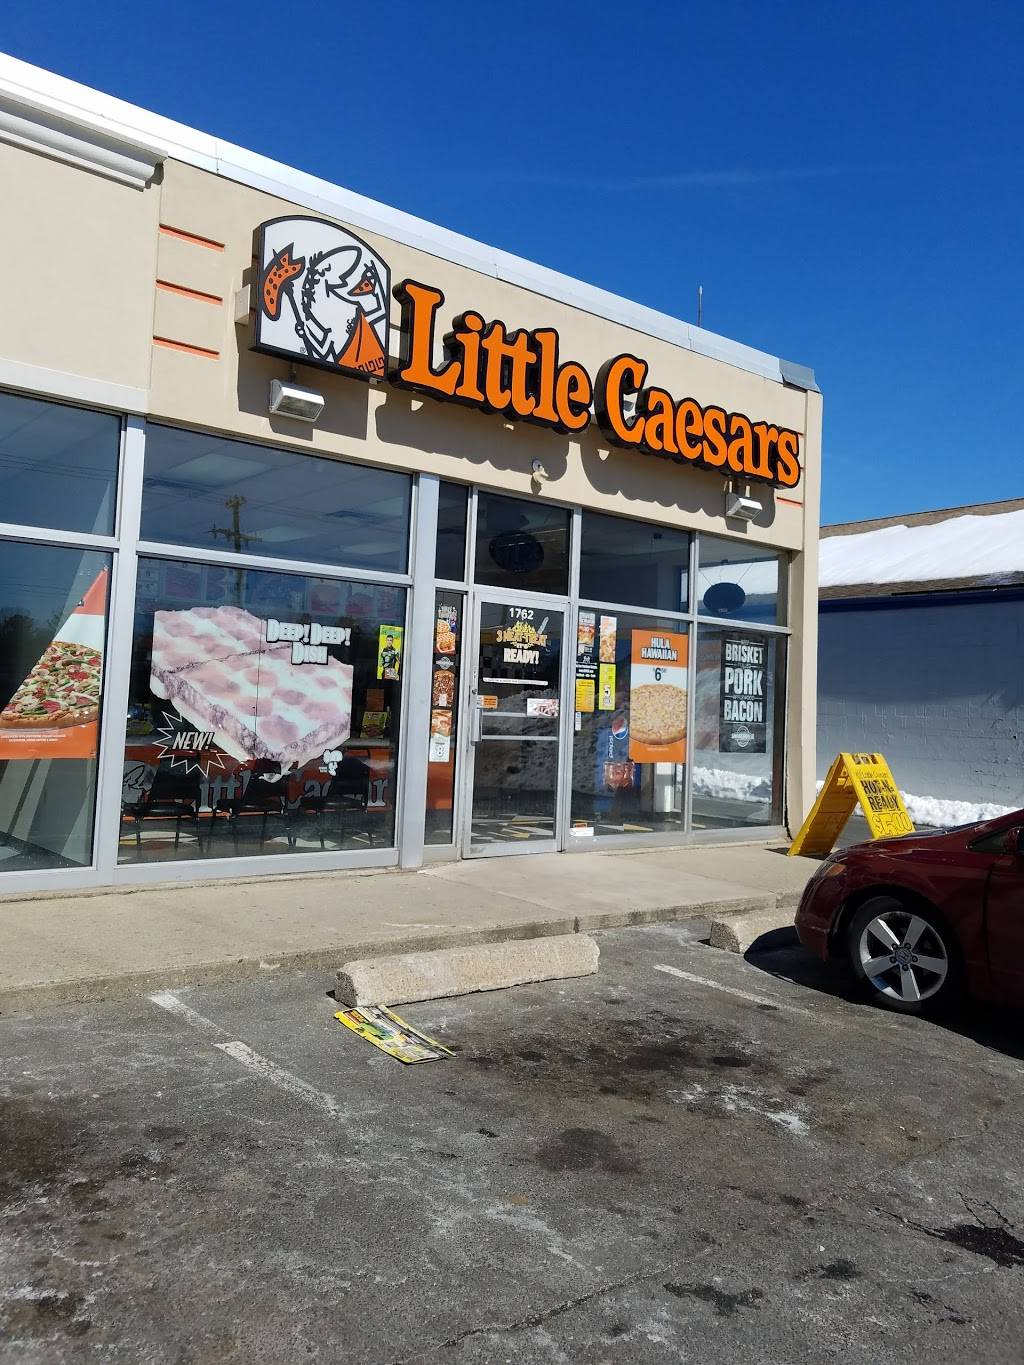 Little Caesars Pizza | meal takeaway | 1762 Boston Rd, Springfield, MA 01129, USA | 4135439237 OR +1 413-543-9237